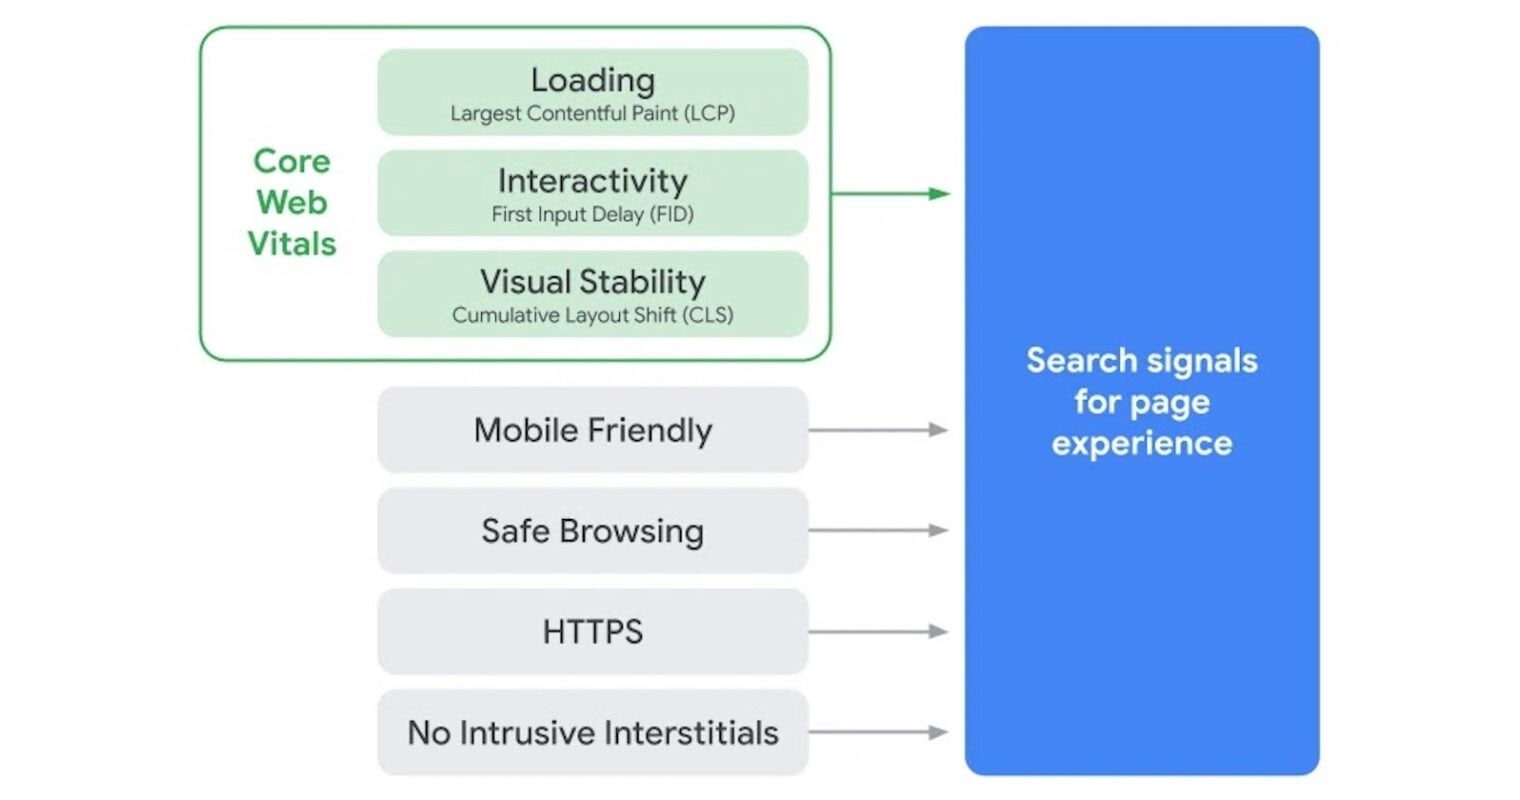 Google's Core Web Vitals to Become Ranking Signals